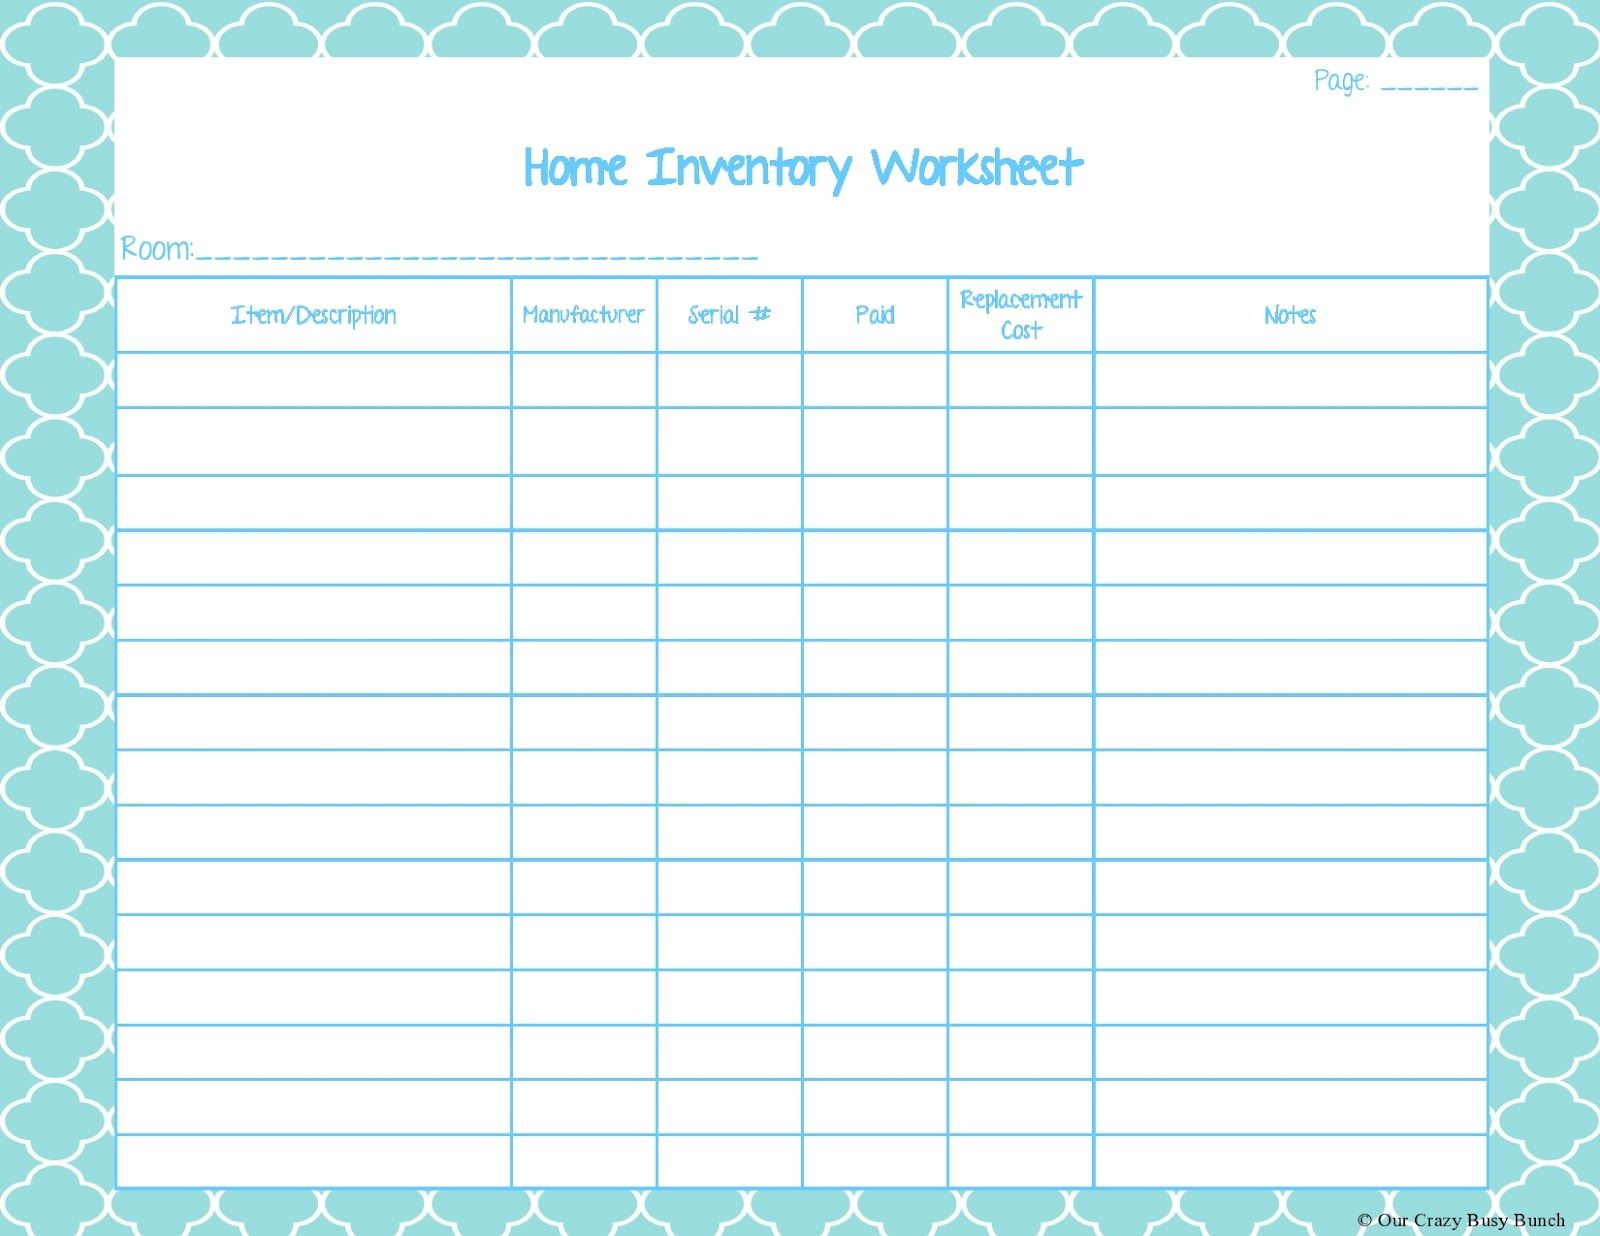 Home Inventory Worksheet